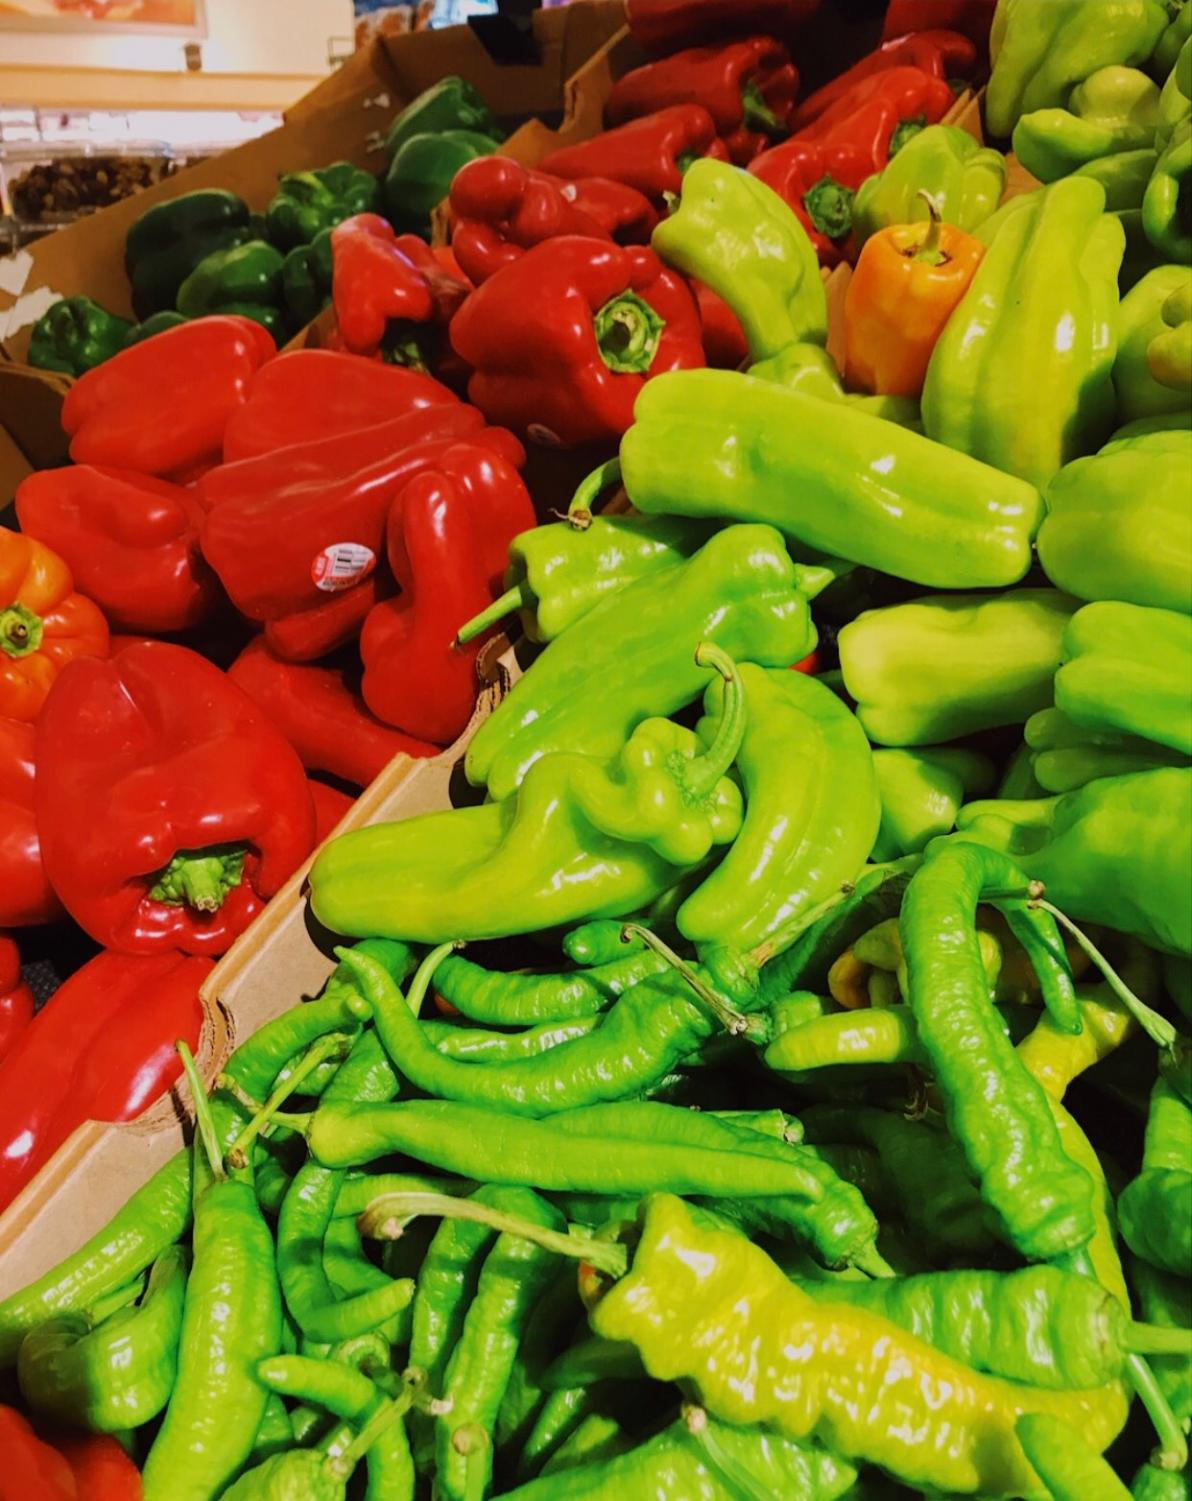 The more color in your diet, the better.  A colorful diet is essential to vegan eating.